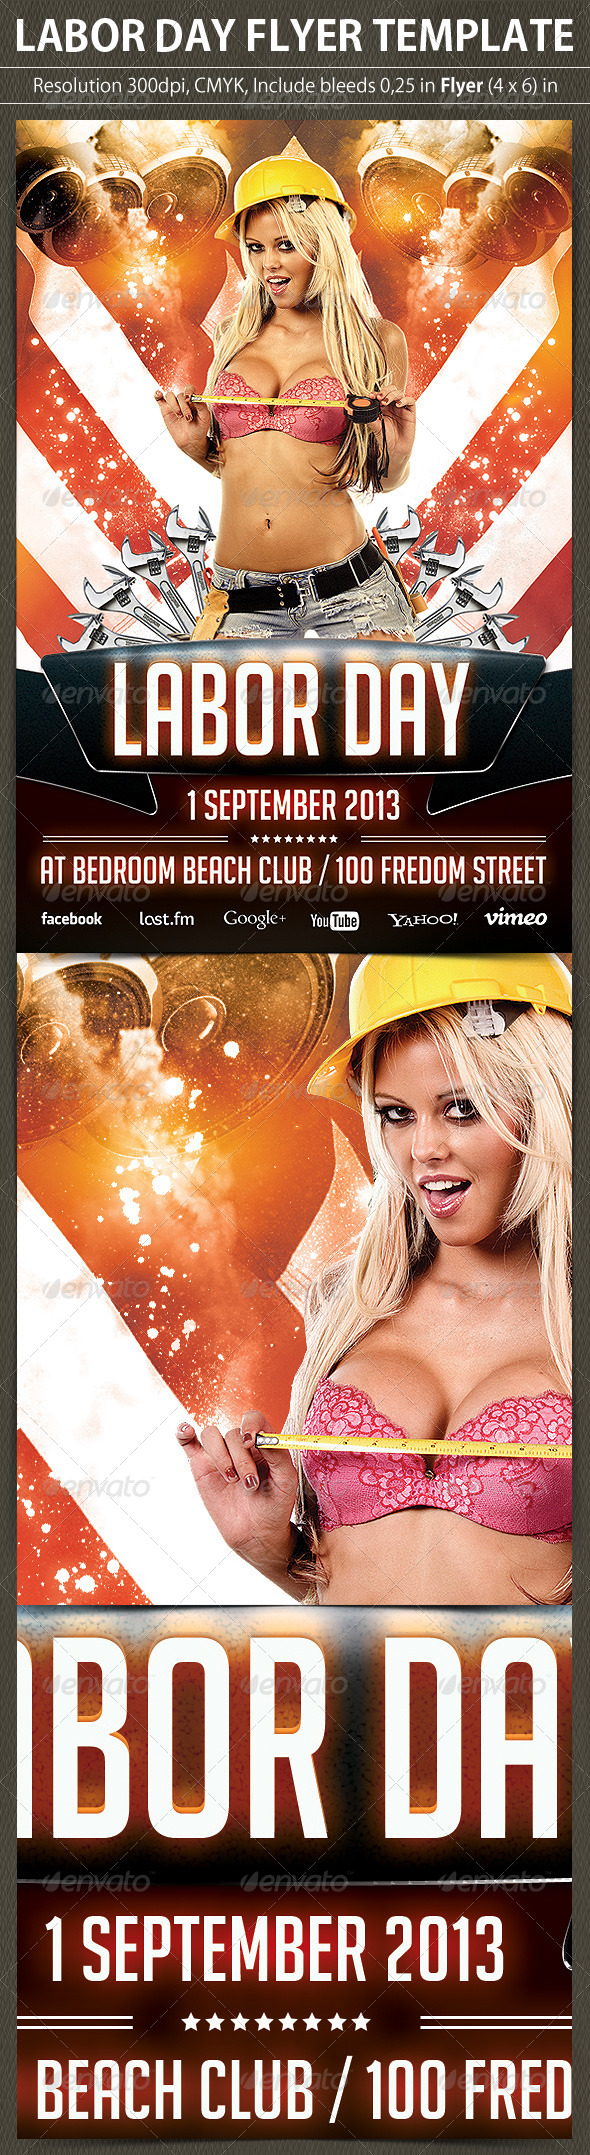 GraphicRiver Labor Day Flyer Template 5355932